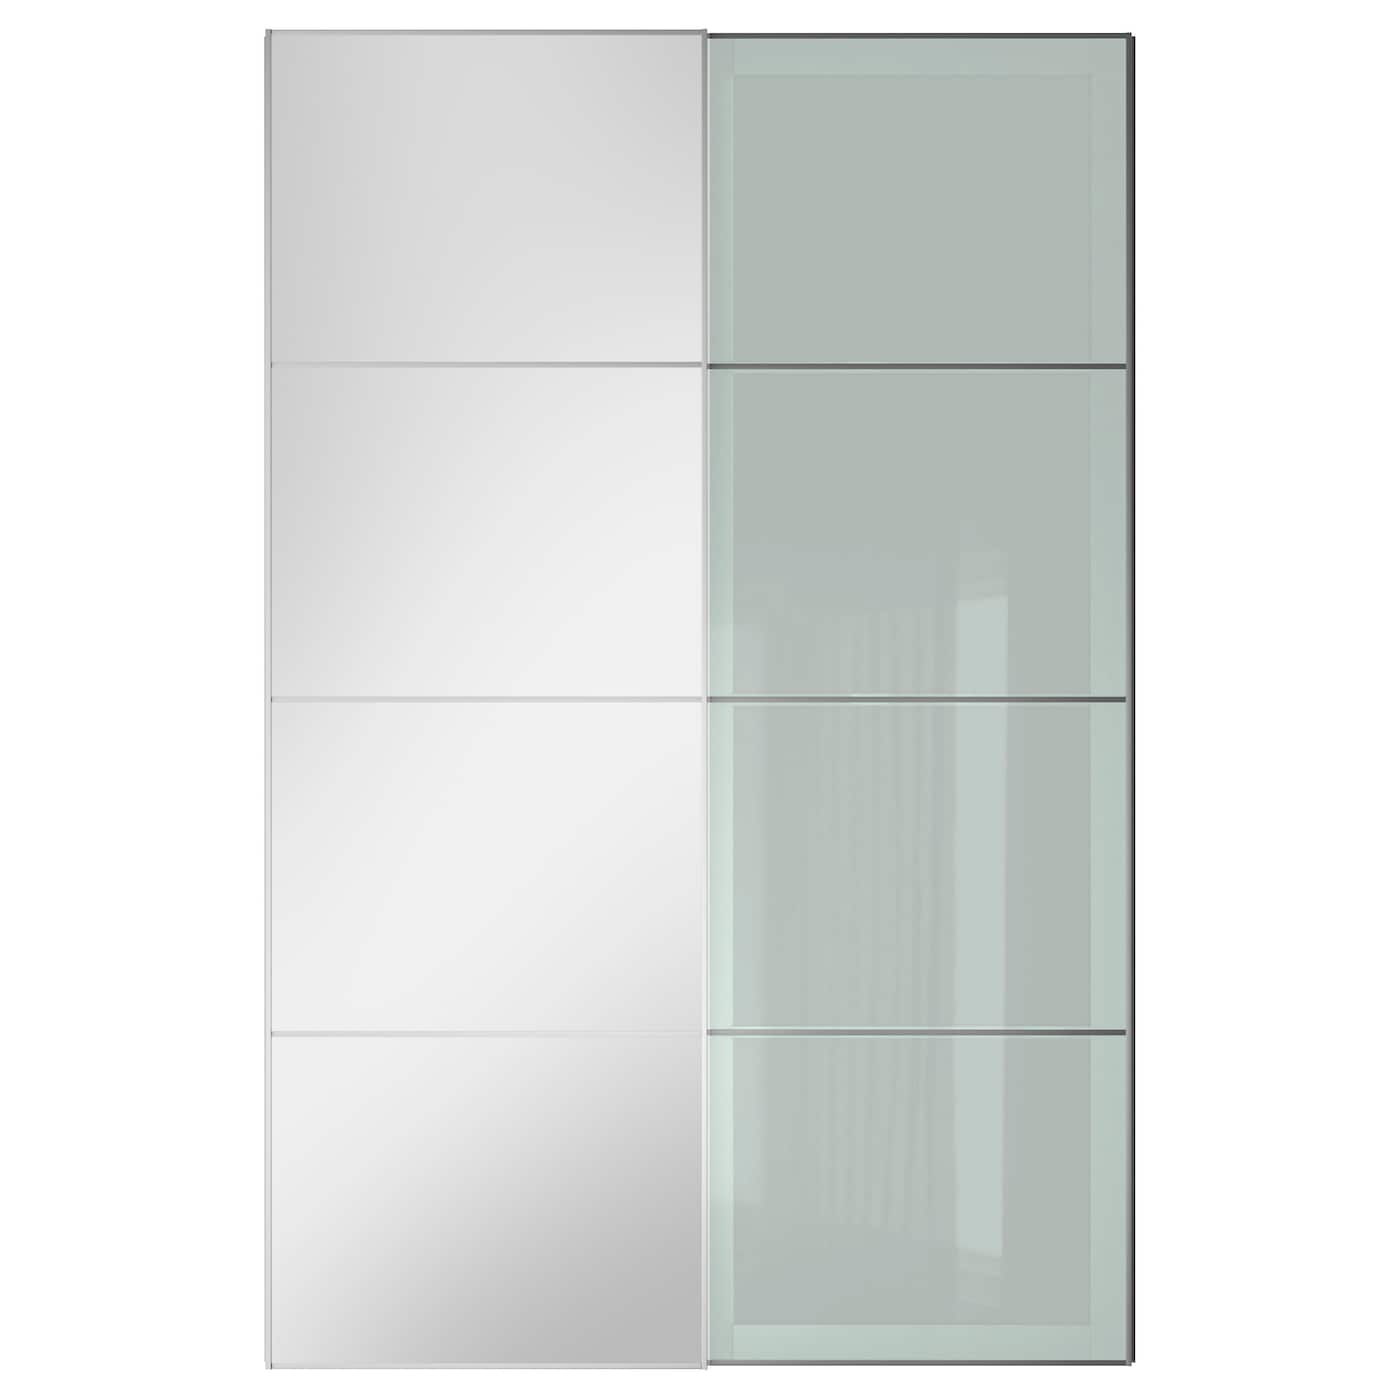 Auli sekken pair of sliding doors mirror glass frosted for Frosted glass sliding doors